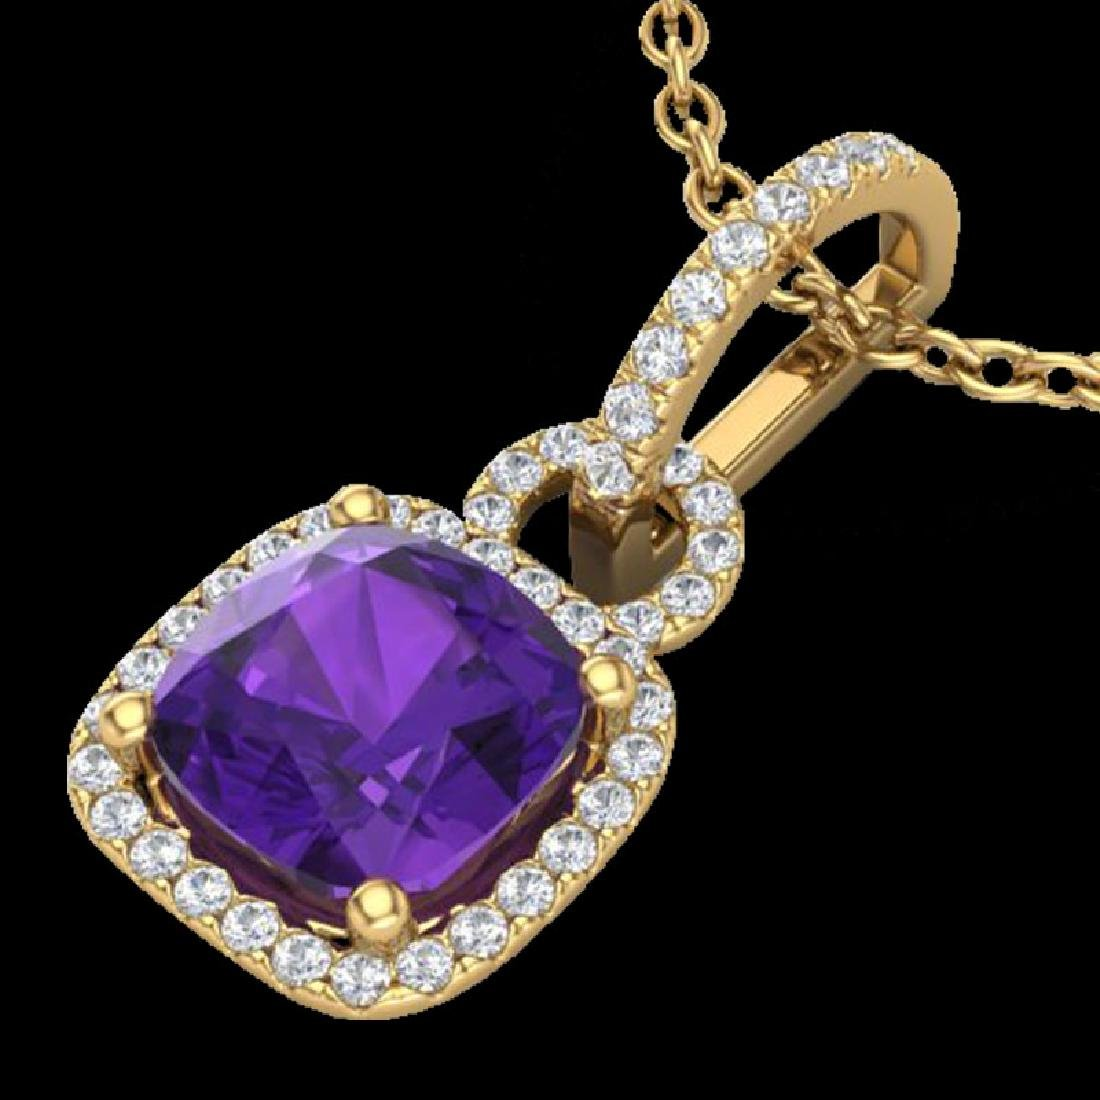 3.50 CTW Amethyst & Micro VS/SI Diamond Necklace 18K